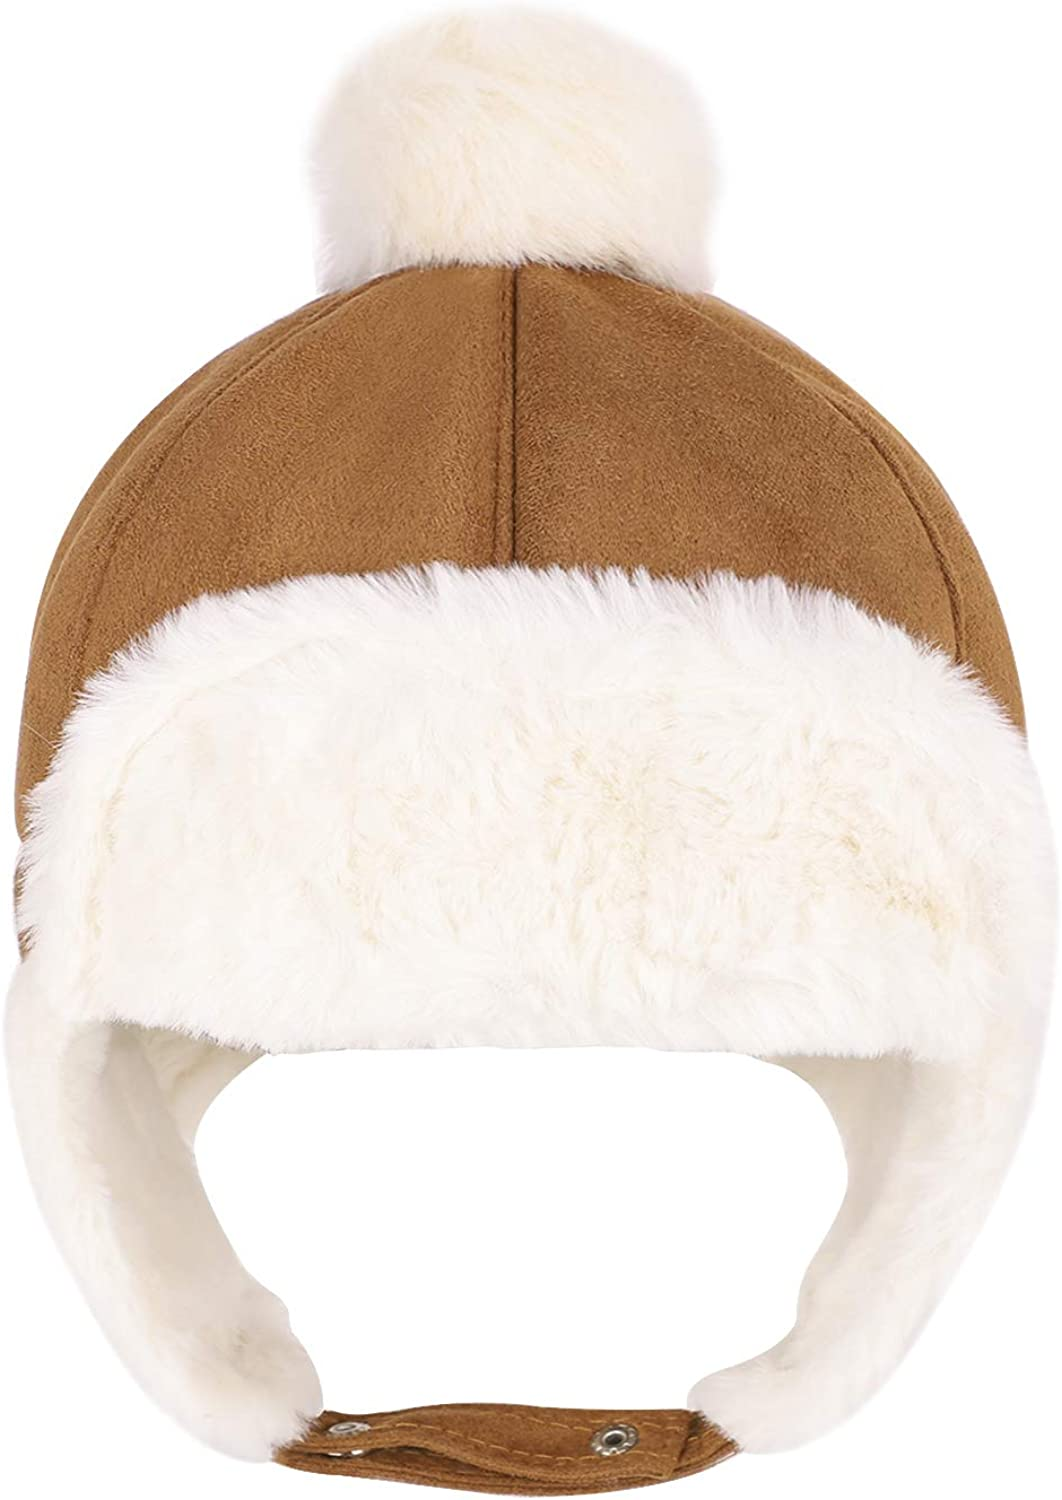 Baby Winter Warm Suede Trooper Bomber Hats Cap Earflap For 6-24 Month Boys Girls